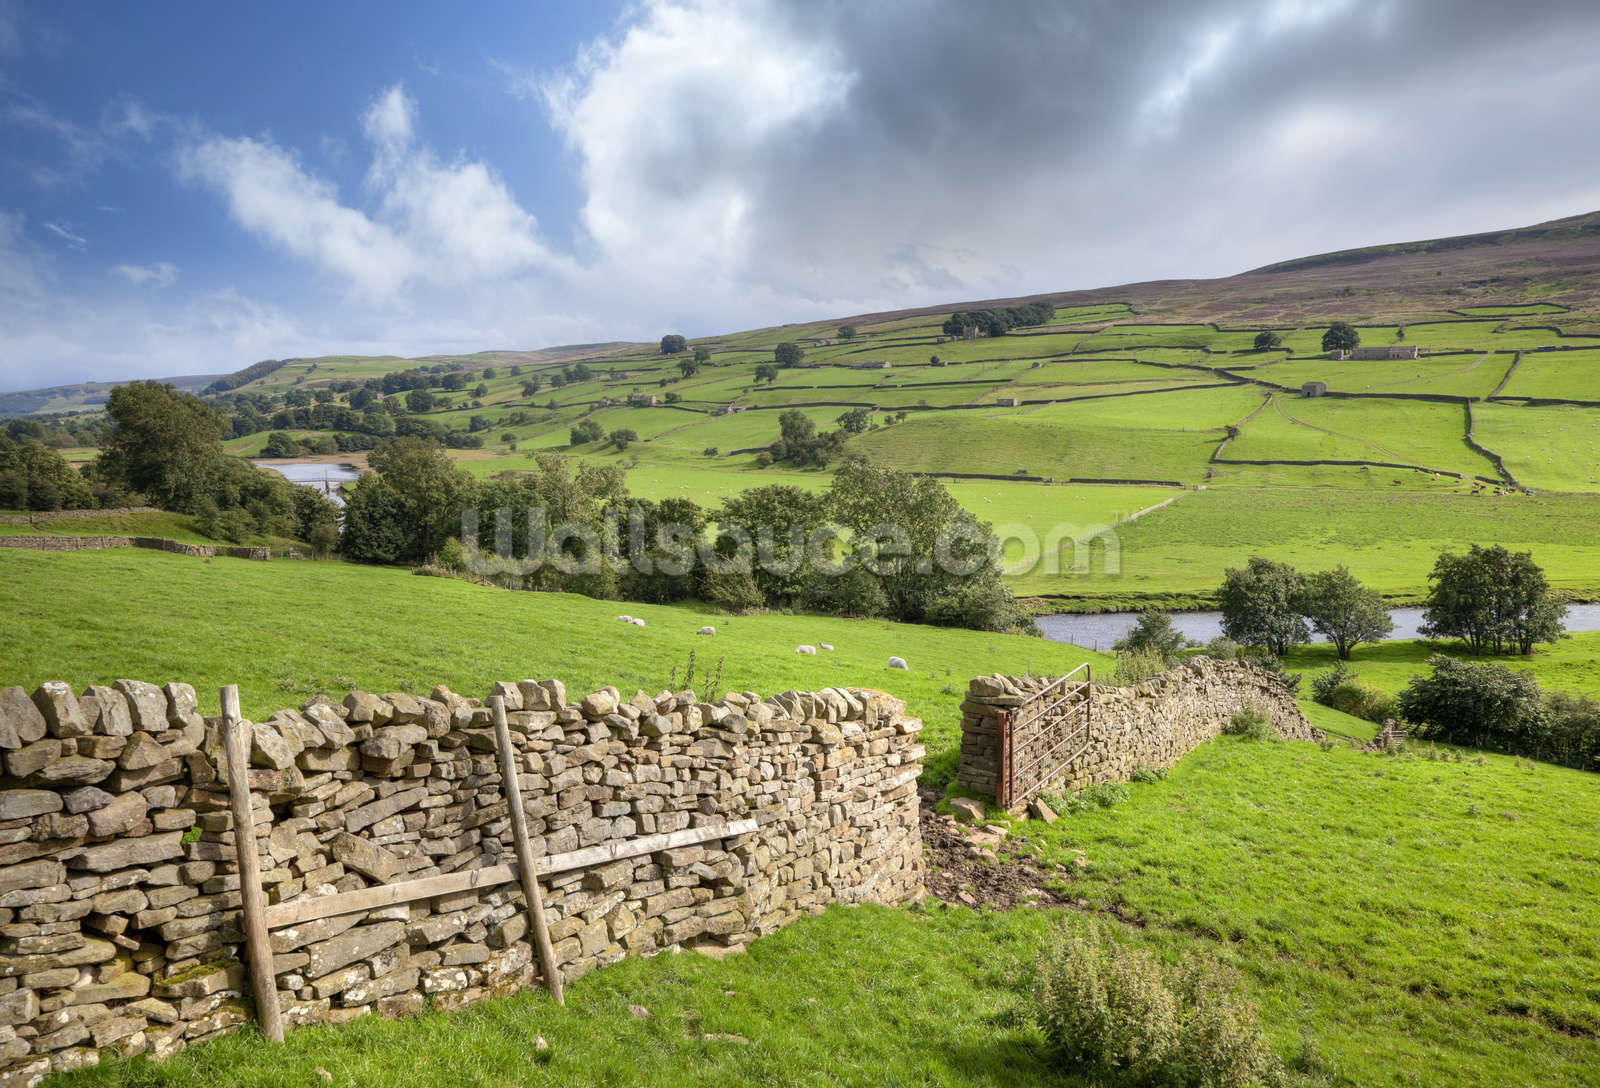 Swaledale yorkshire wallpaper wall mural wallsauce uk for Countryside wallpaper for walls